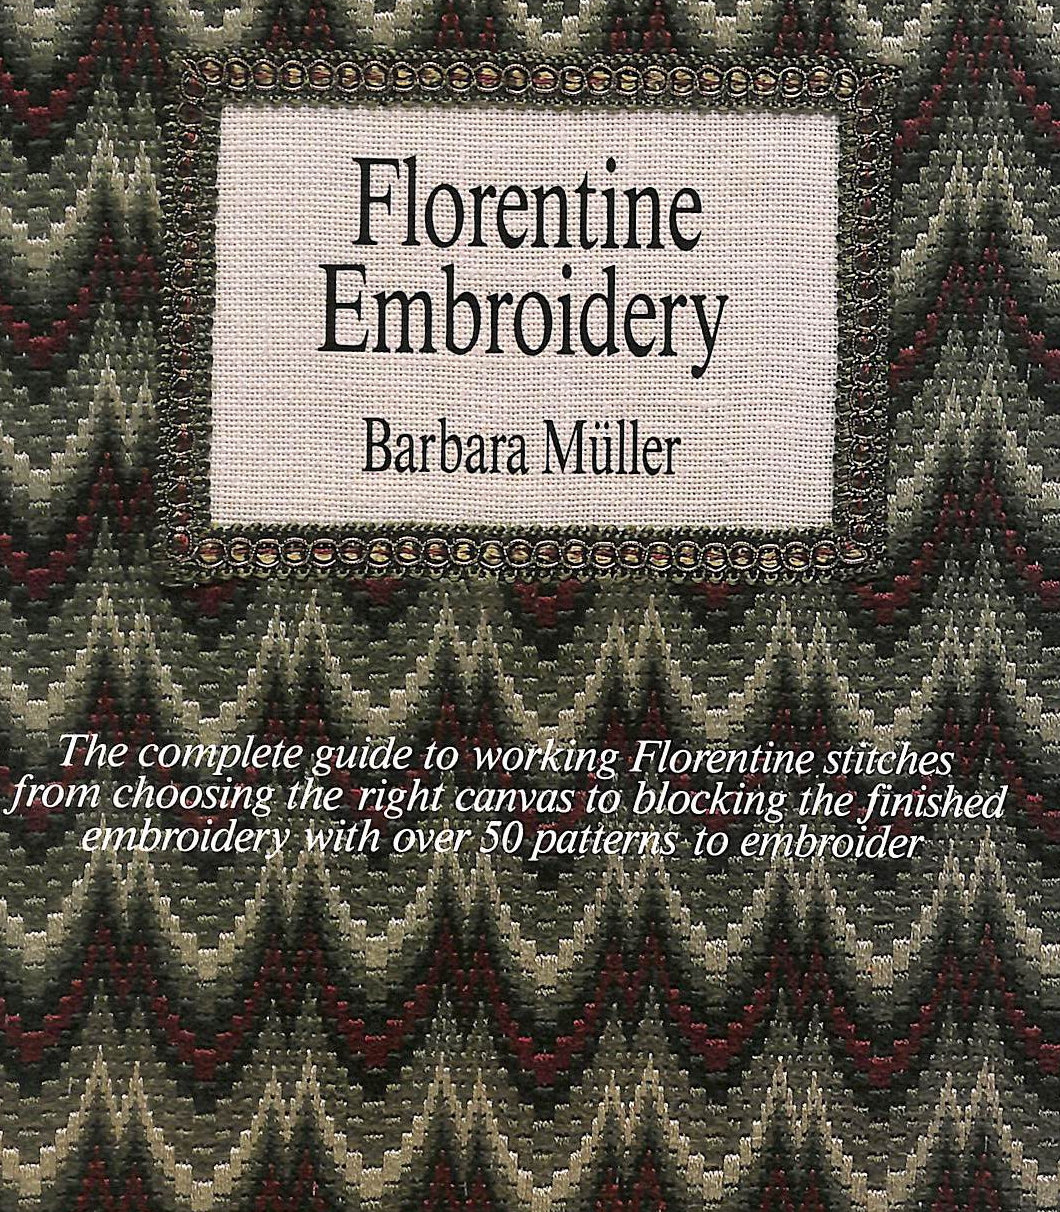 Image for Florentine Embroidery: The Complete Guide to Working Florentine Stitches, from Choosing the Right Canvas to Using the Finished Embroidery, with Over 50 Patterns to Embroider